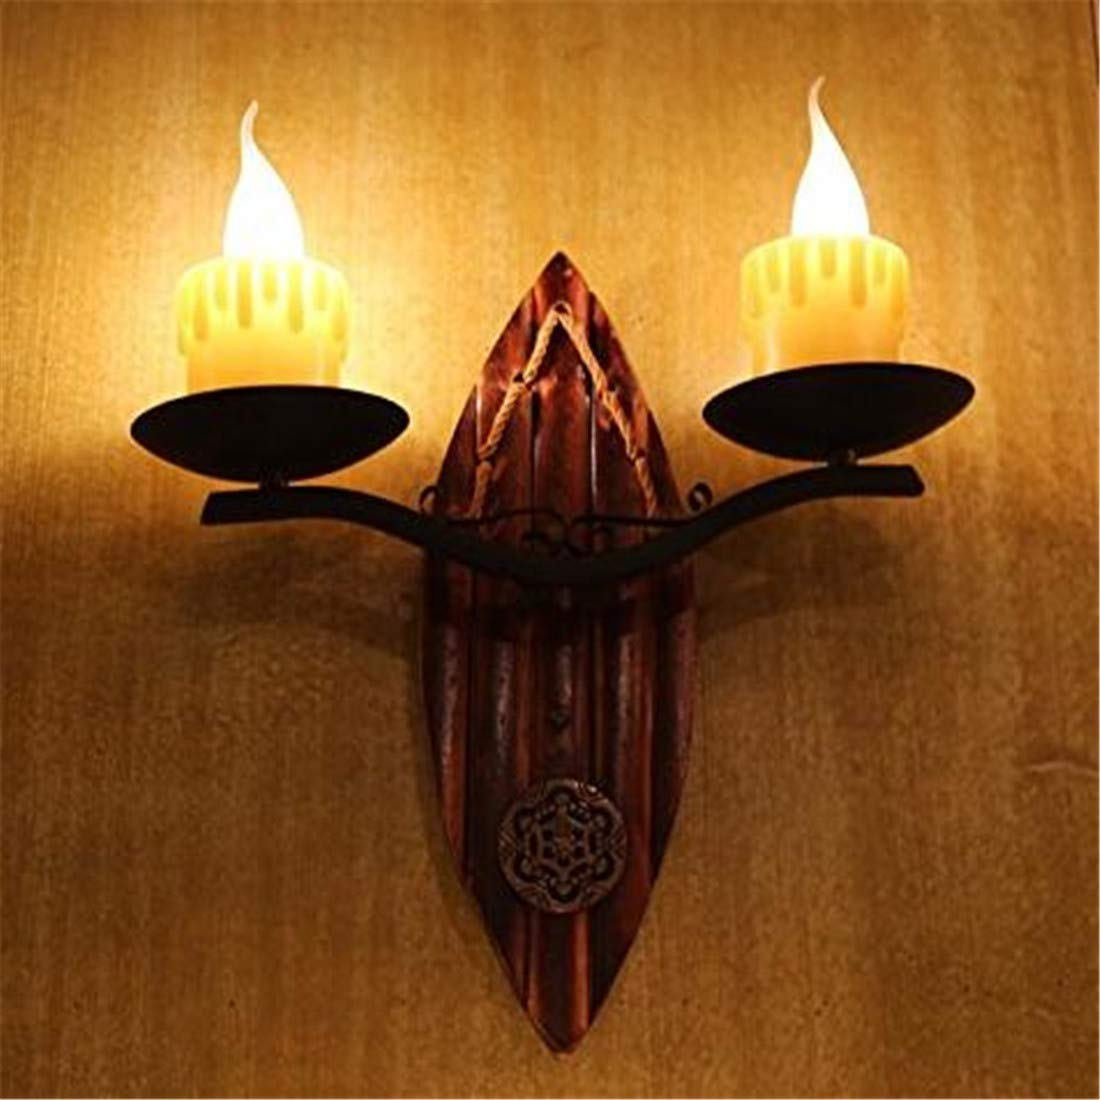 Vintage Chandelierwall Light Sconce E26 27 Base Wall Lamp Candle Lamp Creative Retro Cafe The Gallery Wall Lamp